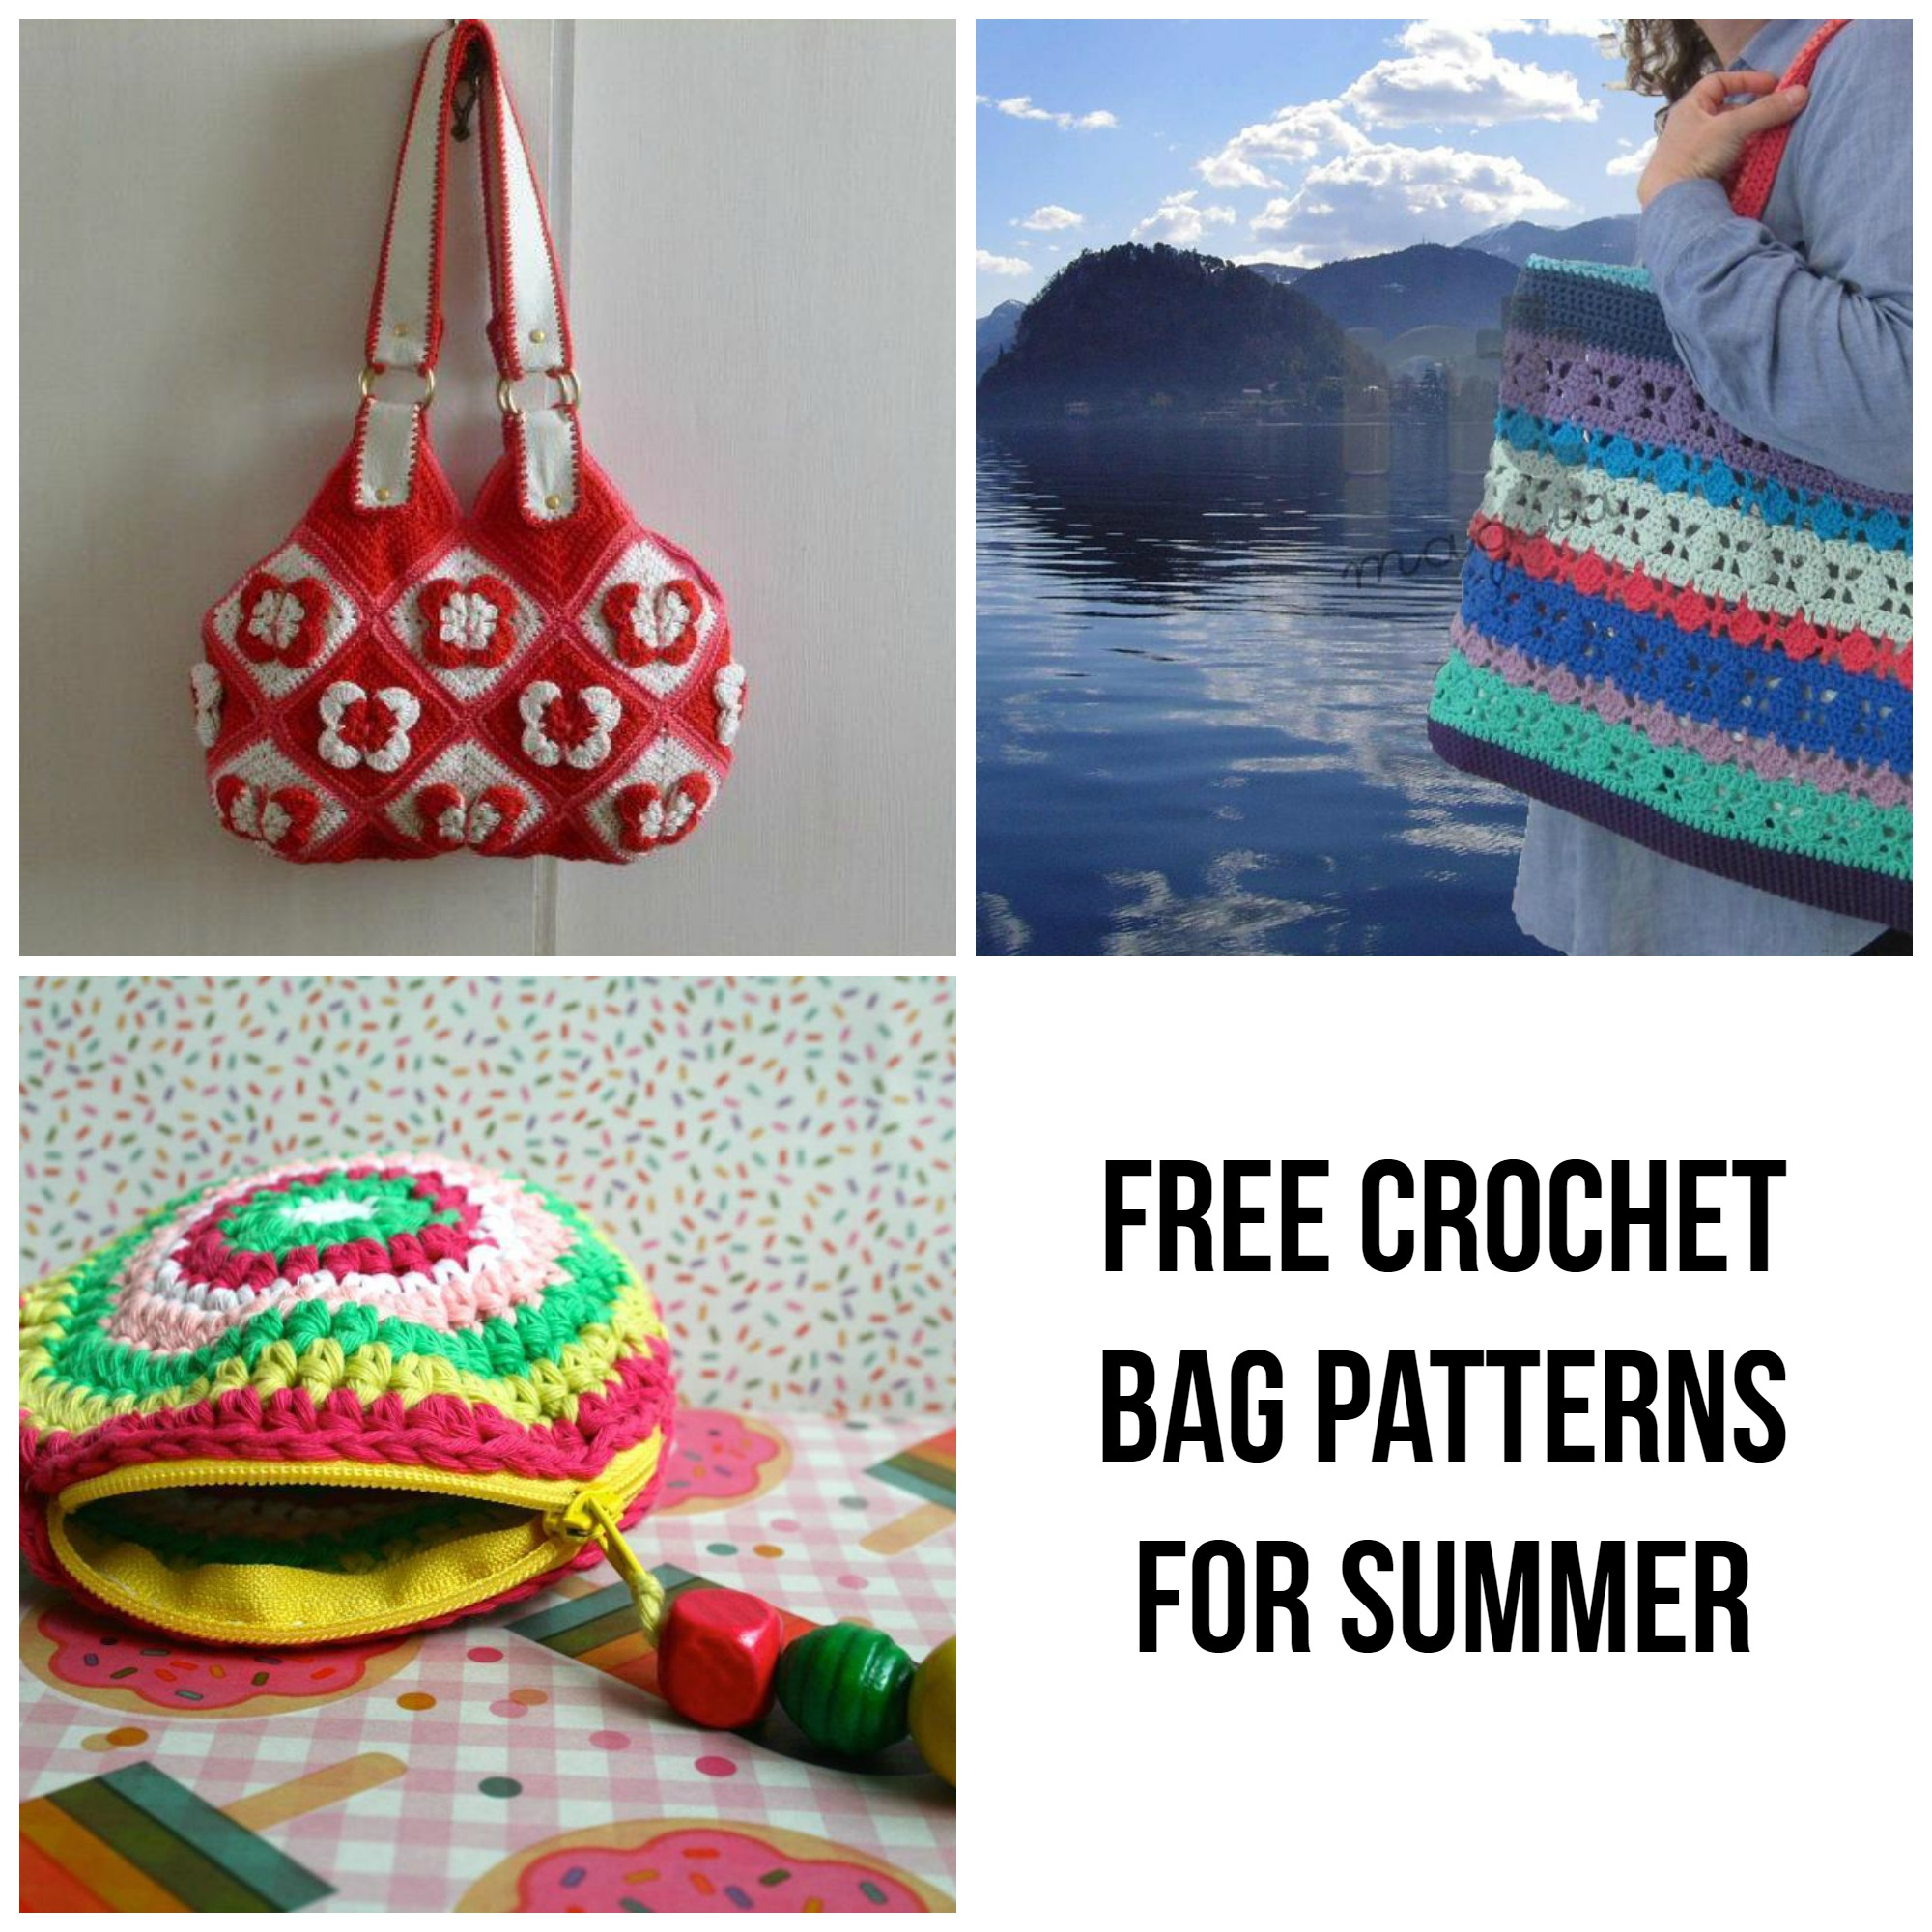 Free Crochet Bag Patterns for Summer